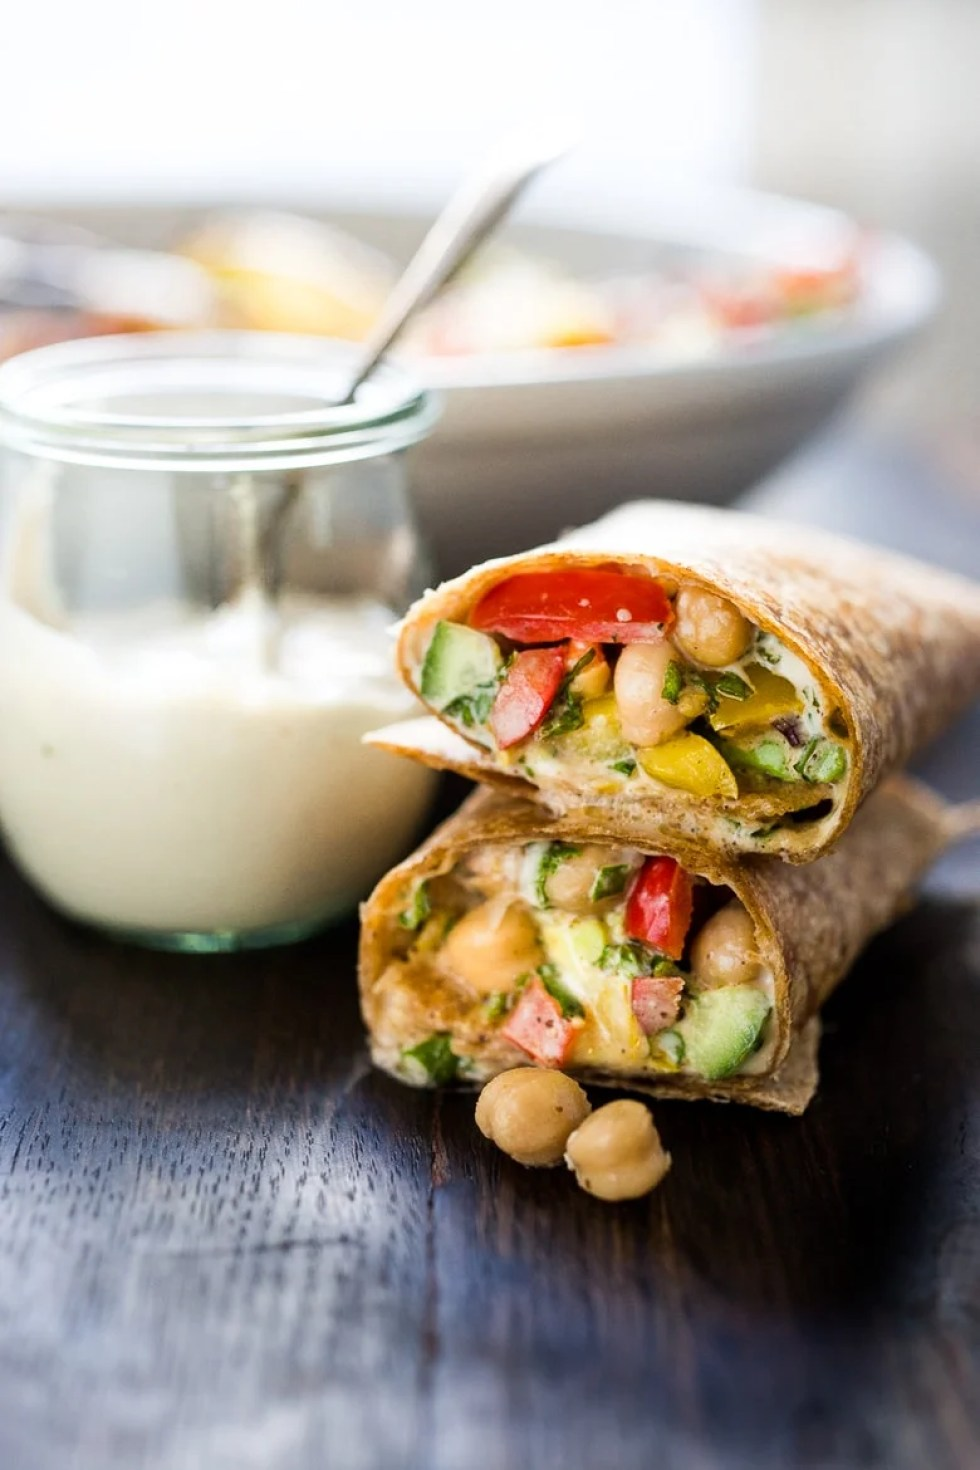 A simple & delicious recipe for a Balela Salad Wrap, made w/ finely chopped vegetables, chickpeas, fresh herbs, lemon & olive oil. Serve in a tortilla with tahini sauce or over greens. | www.feastingathome.com